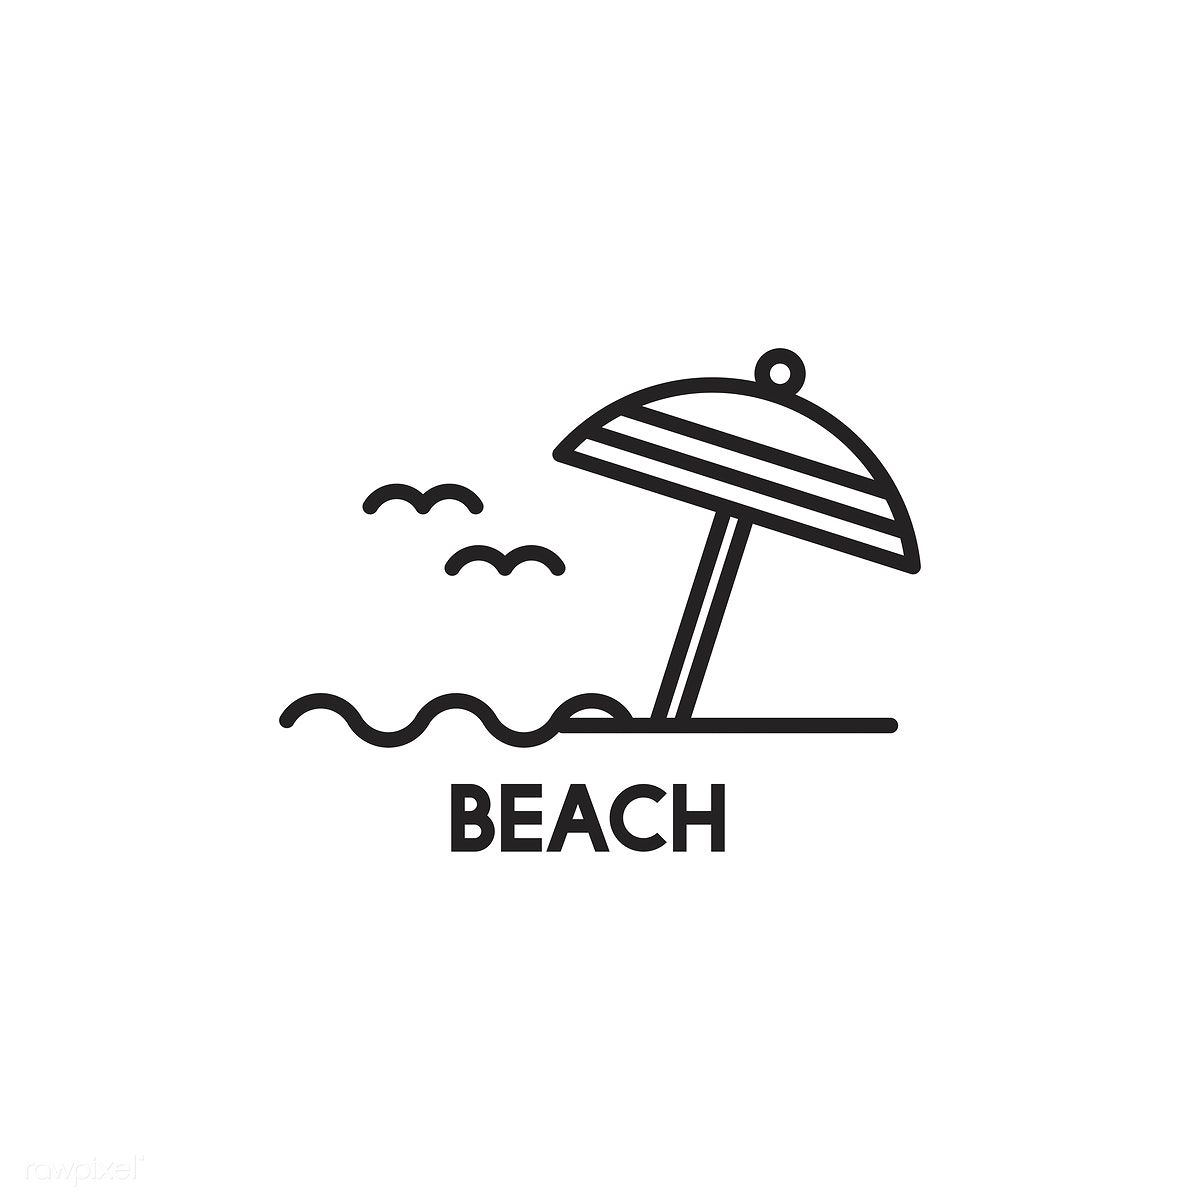 Download free vector about beach, graphic and active 396770